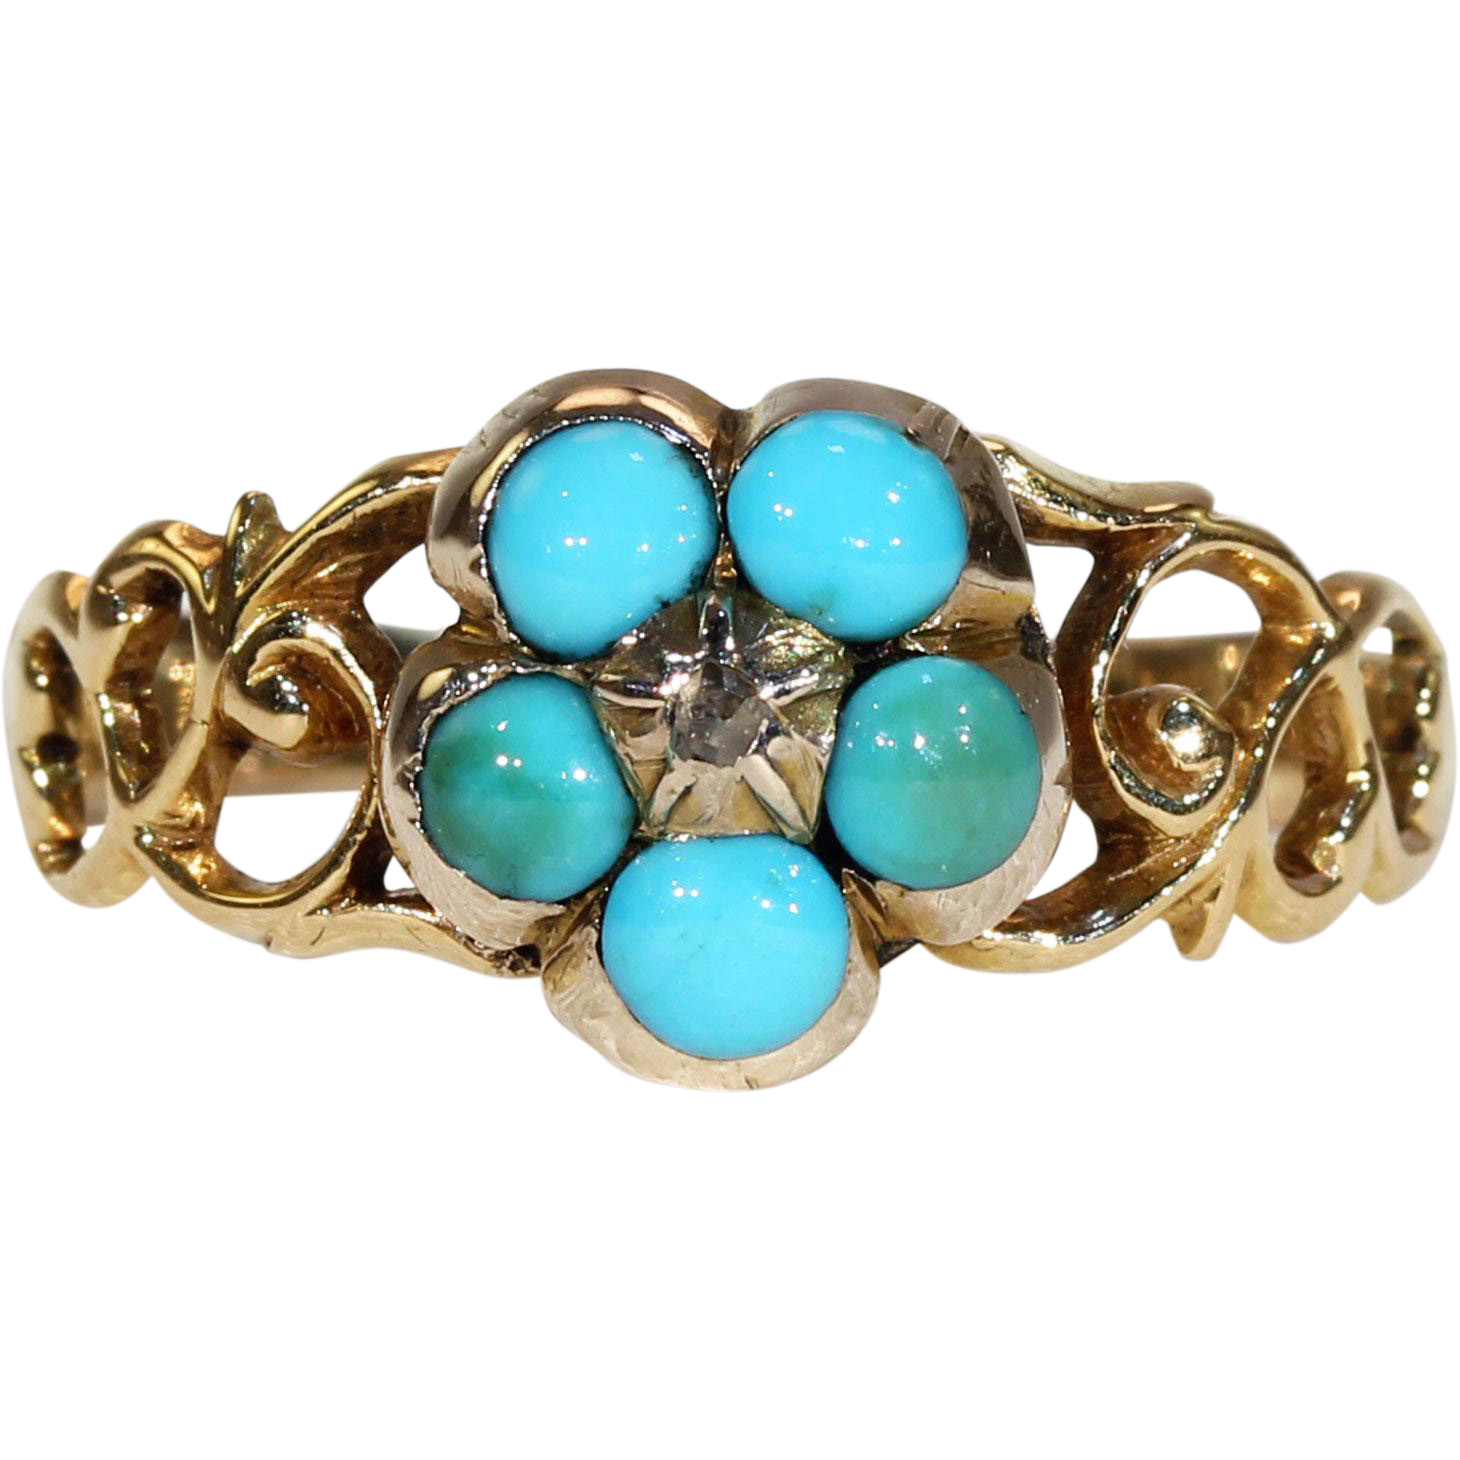 turquoise gold jewelry watches bracelets and bracelet braided listings diamond other graided